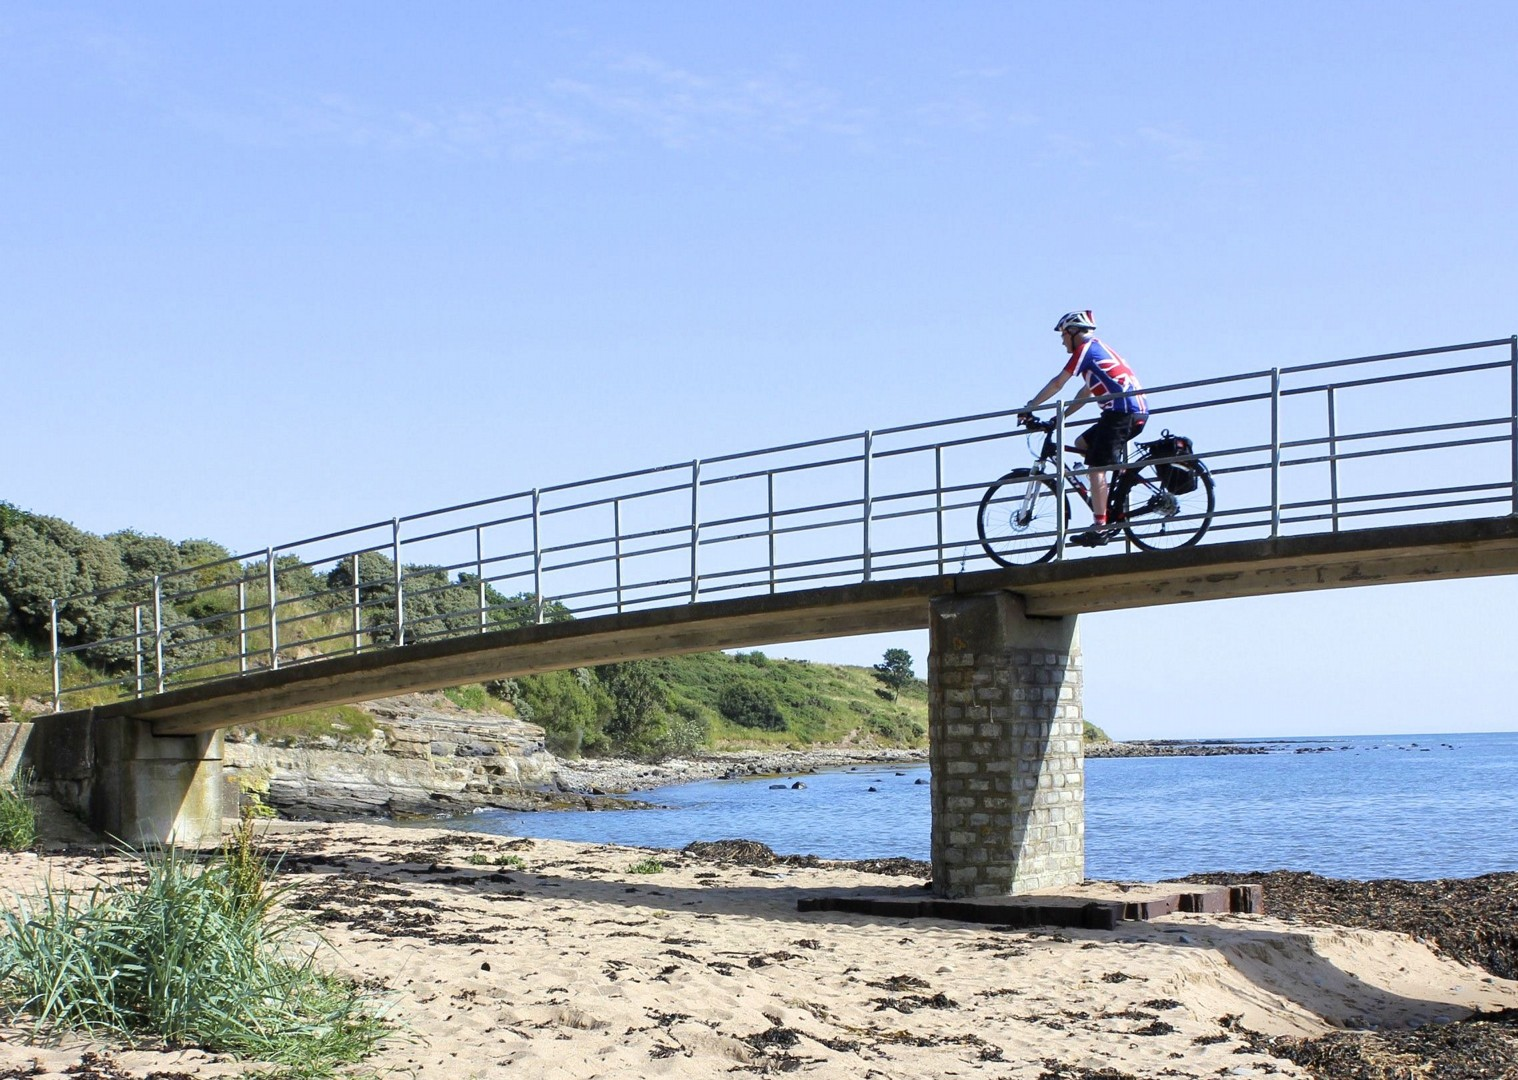 Coast&castles.jpg - UK - Coast and Castles - 4 Days Cycling - Self-Guided Leisure Cycling Holiday - Leisure Cycling